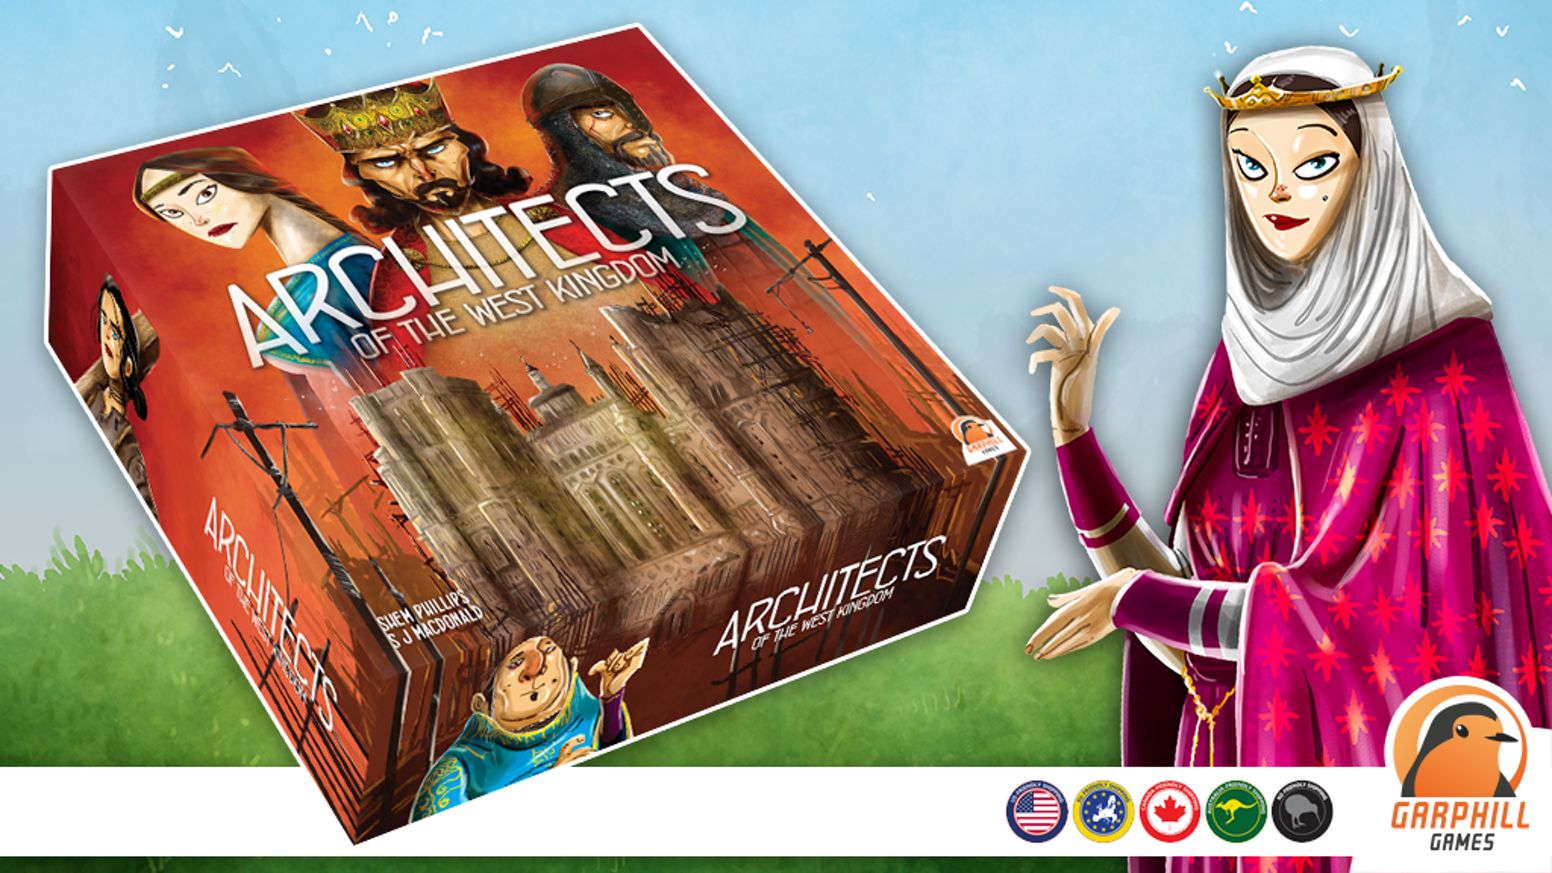 Hire apprentices, construct the cathedral and develop the city in this unique worker placement game for 1-5 players.